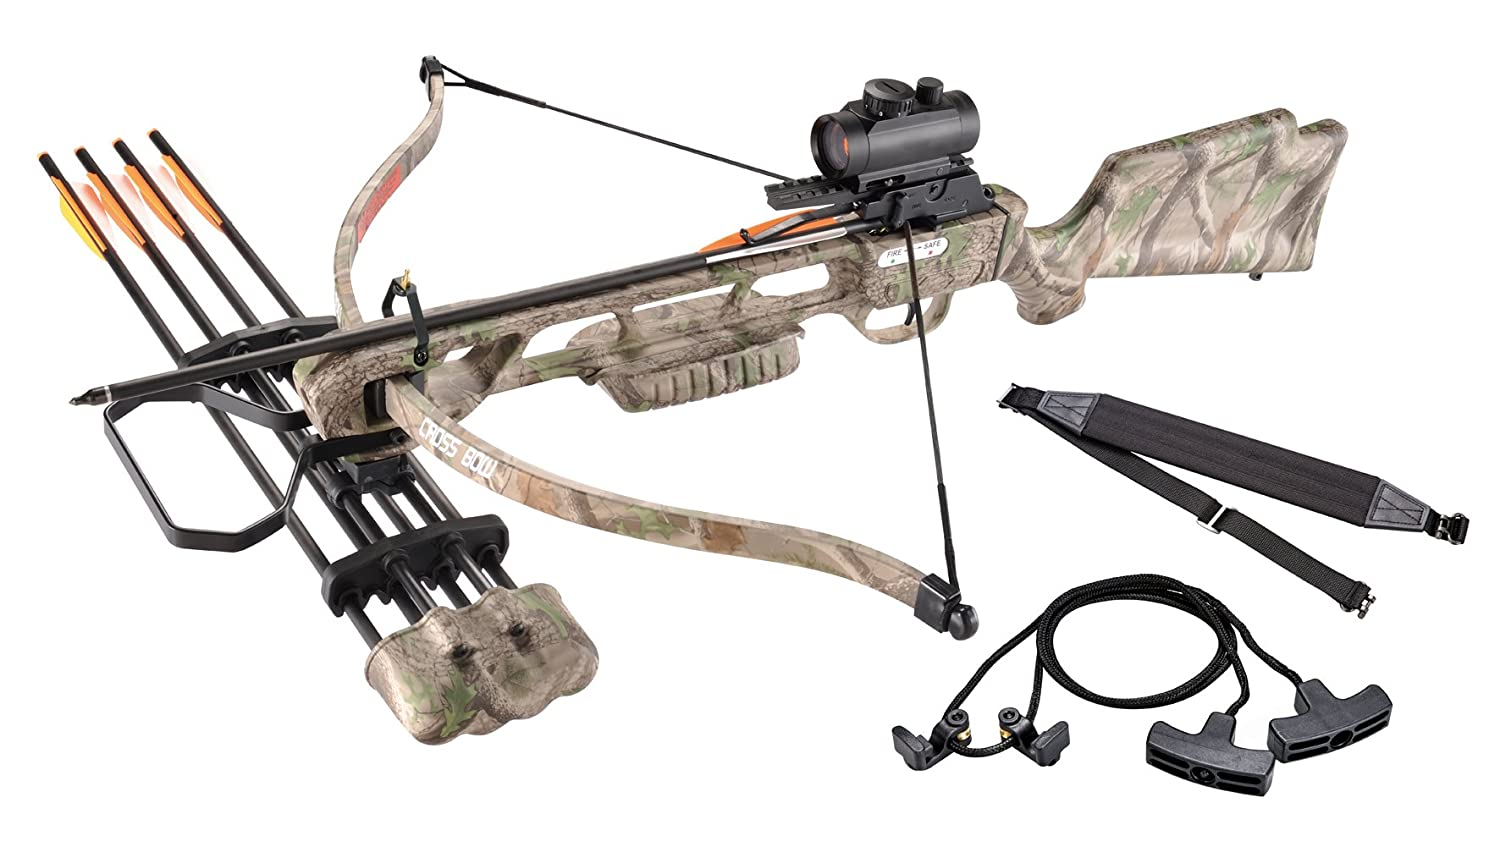 XGear Crossbow 160lbs 210fps Archery Equipment Hunting Bow with Quiver and 4pcs of Aluminum Arrow